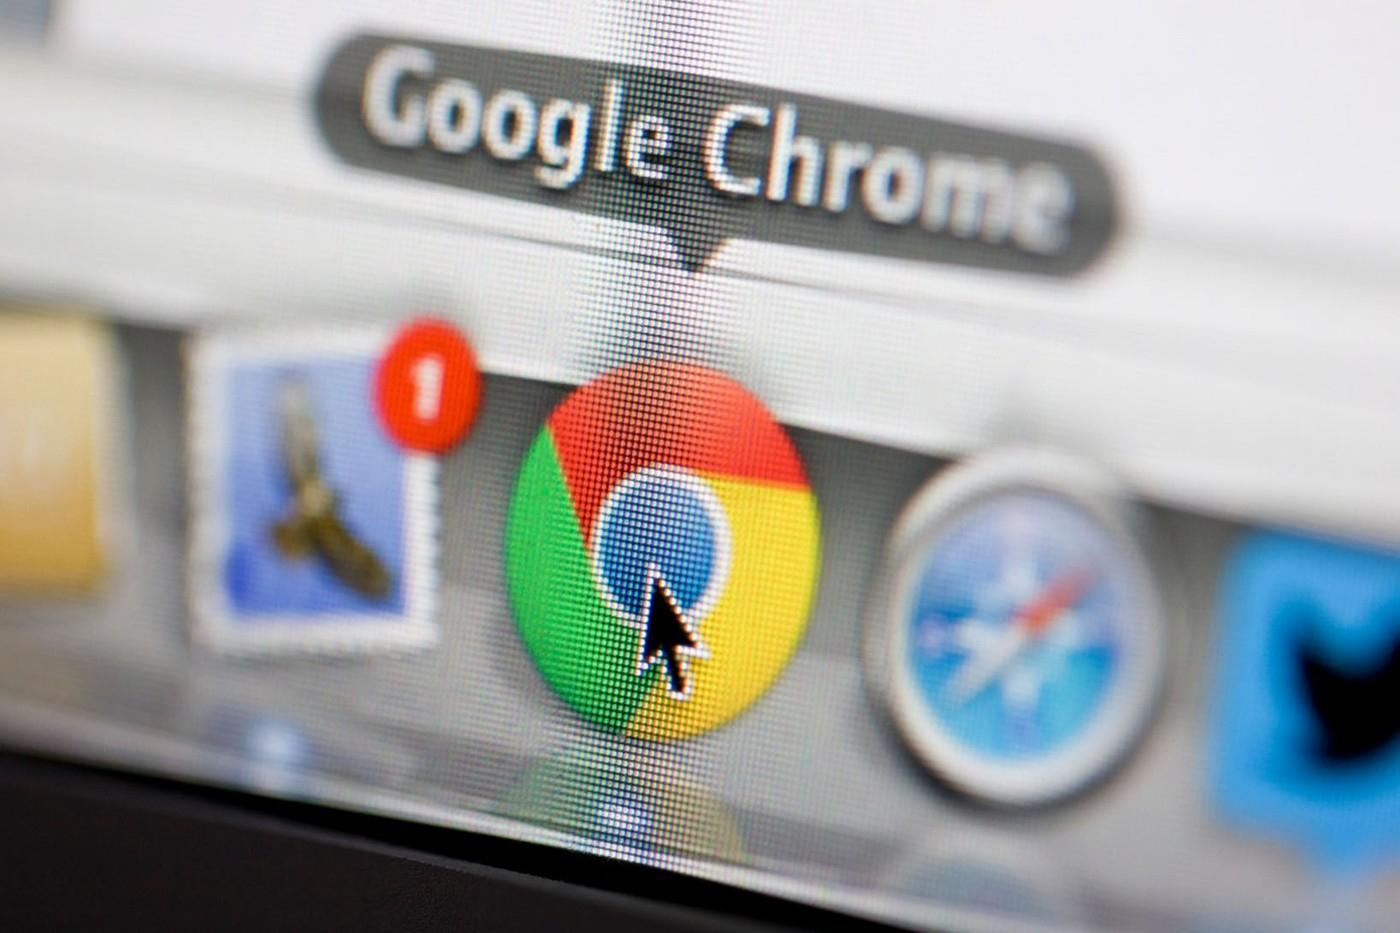 Google Chrome internet pretraživač